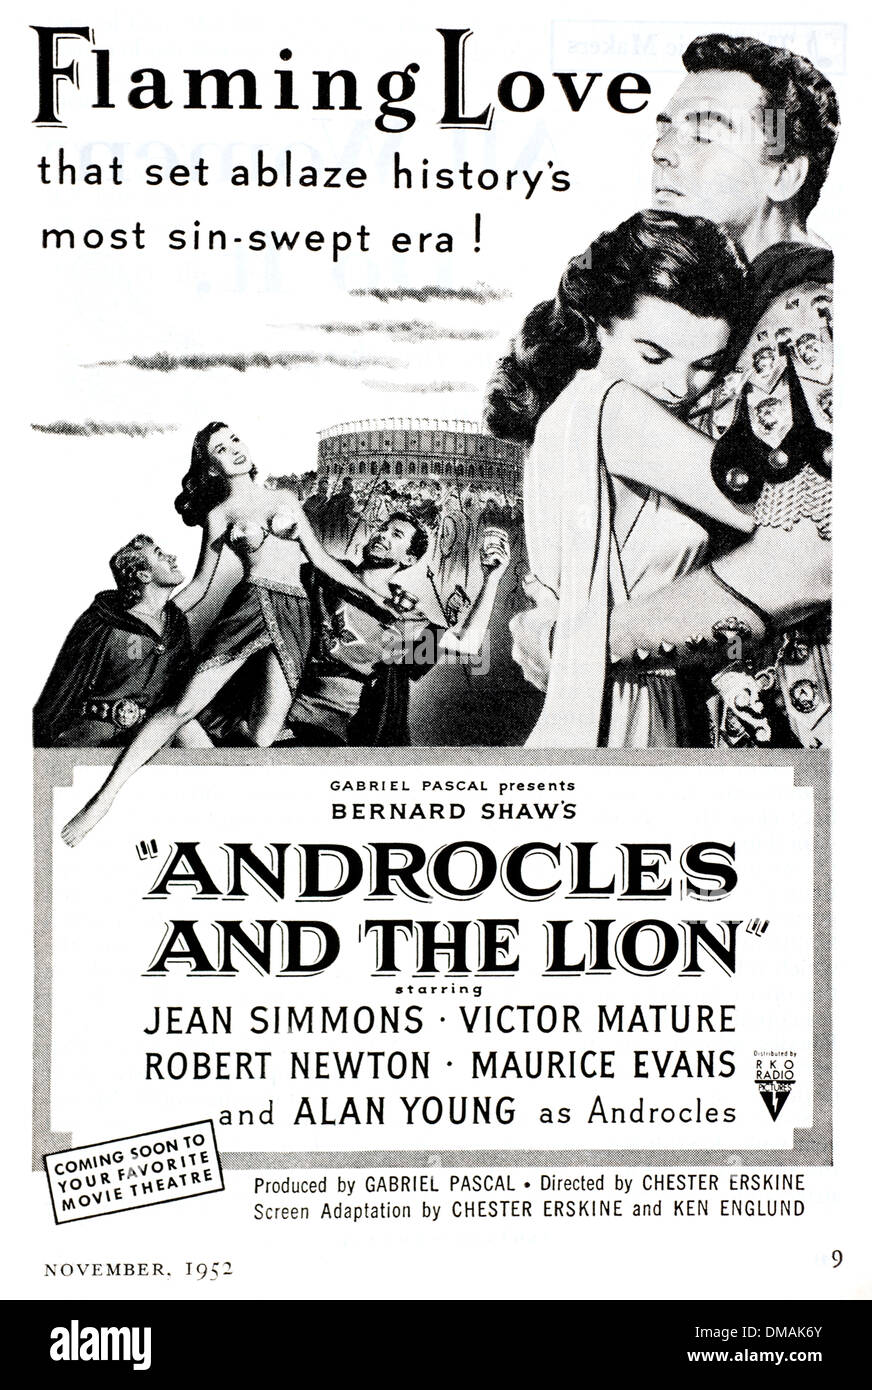 Old Movie Advert Androcles and the Lion Historical Archival Document Stock Photo